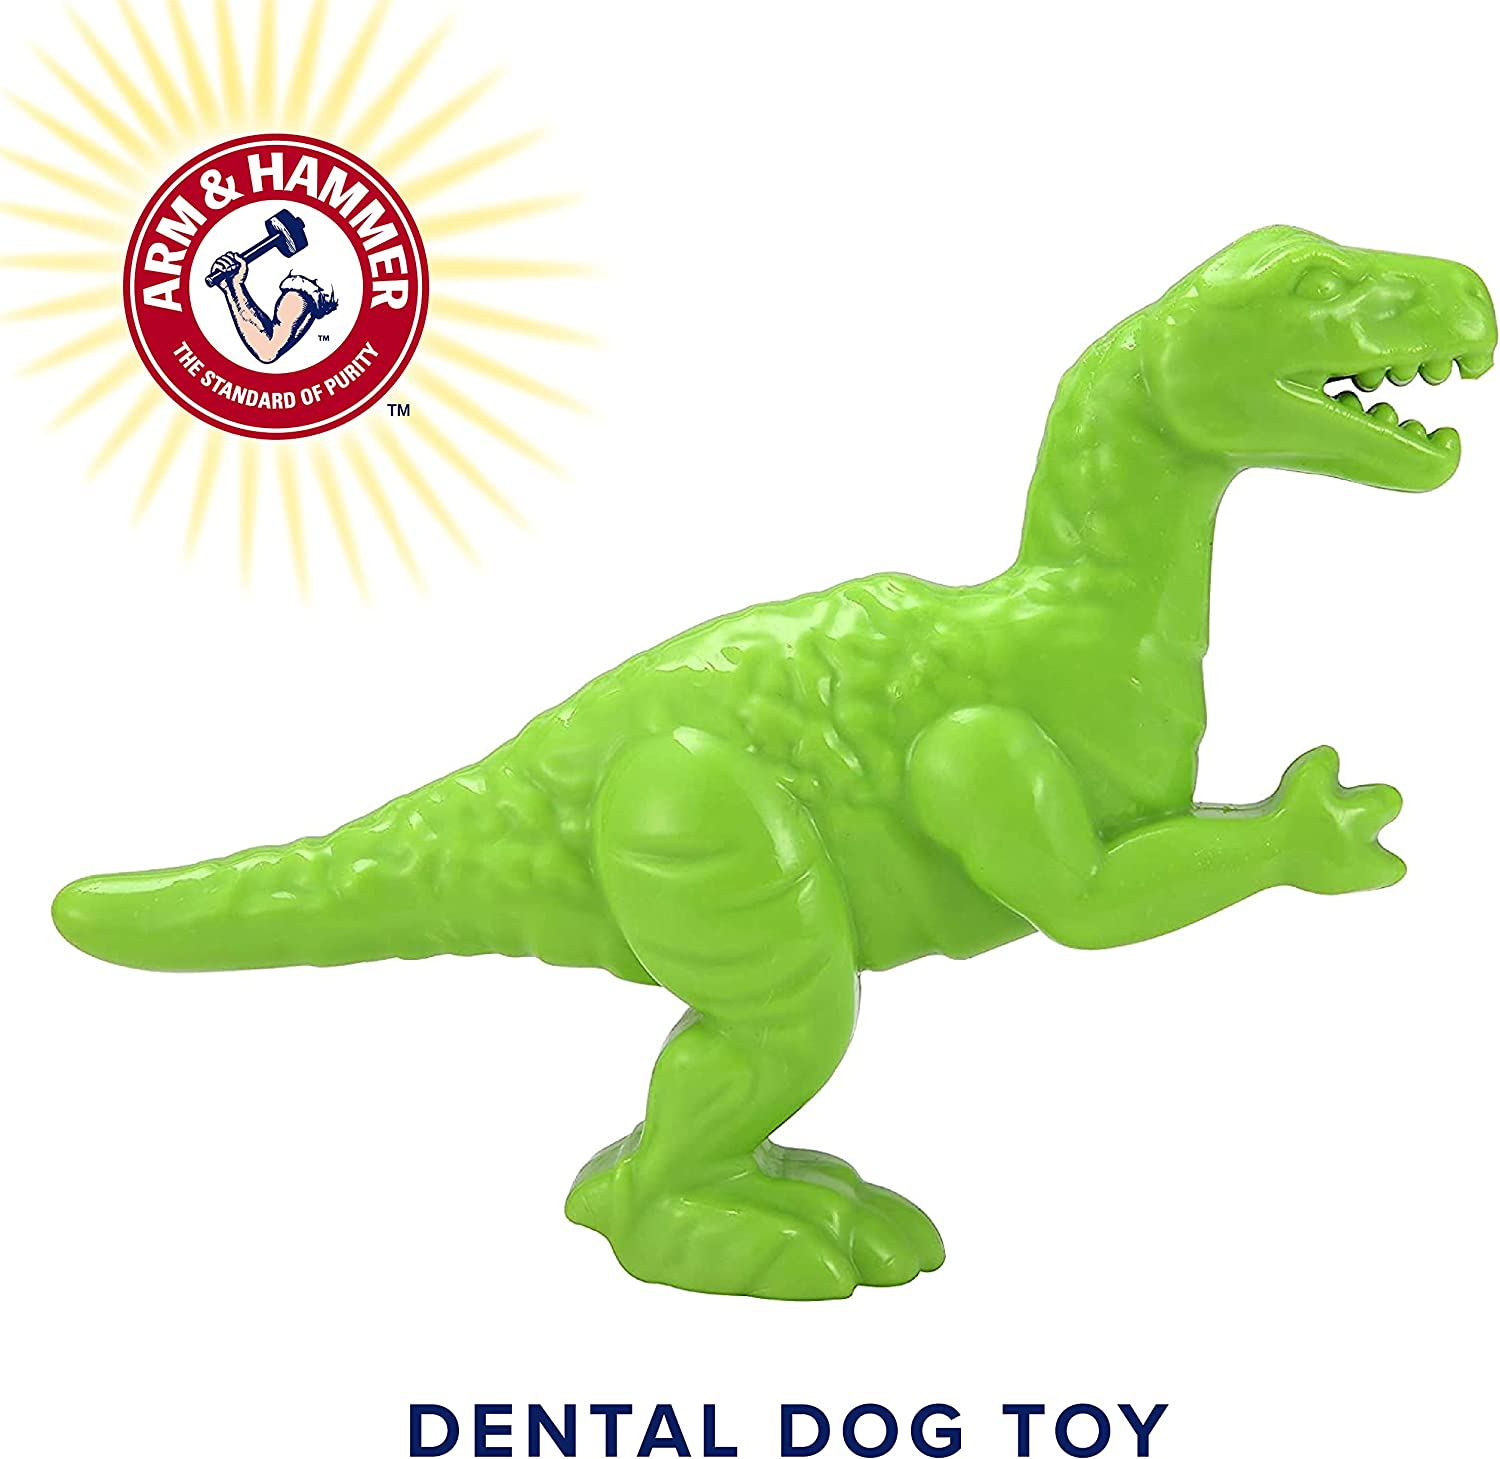 Arm & Hammer Nubbies Dental Toys T-Rex Dental Chew Toy for Dogs | Best Dog Chew Toy For Moderate Chewers | Reduces Plaque & Tartar Buildup Without Brushing, Mint Flavor